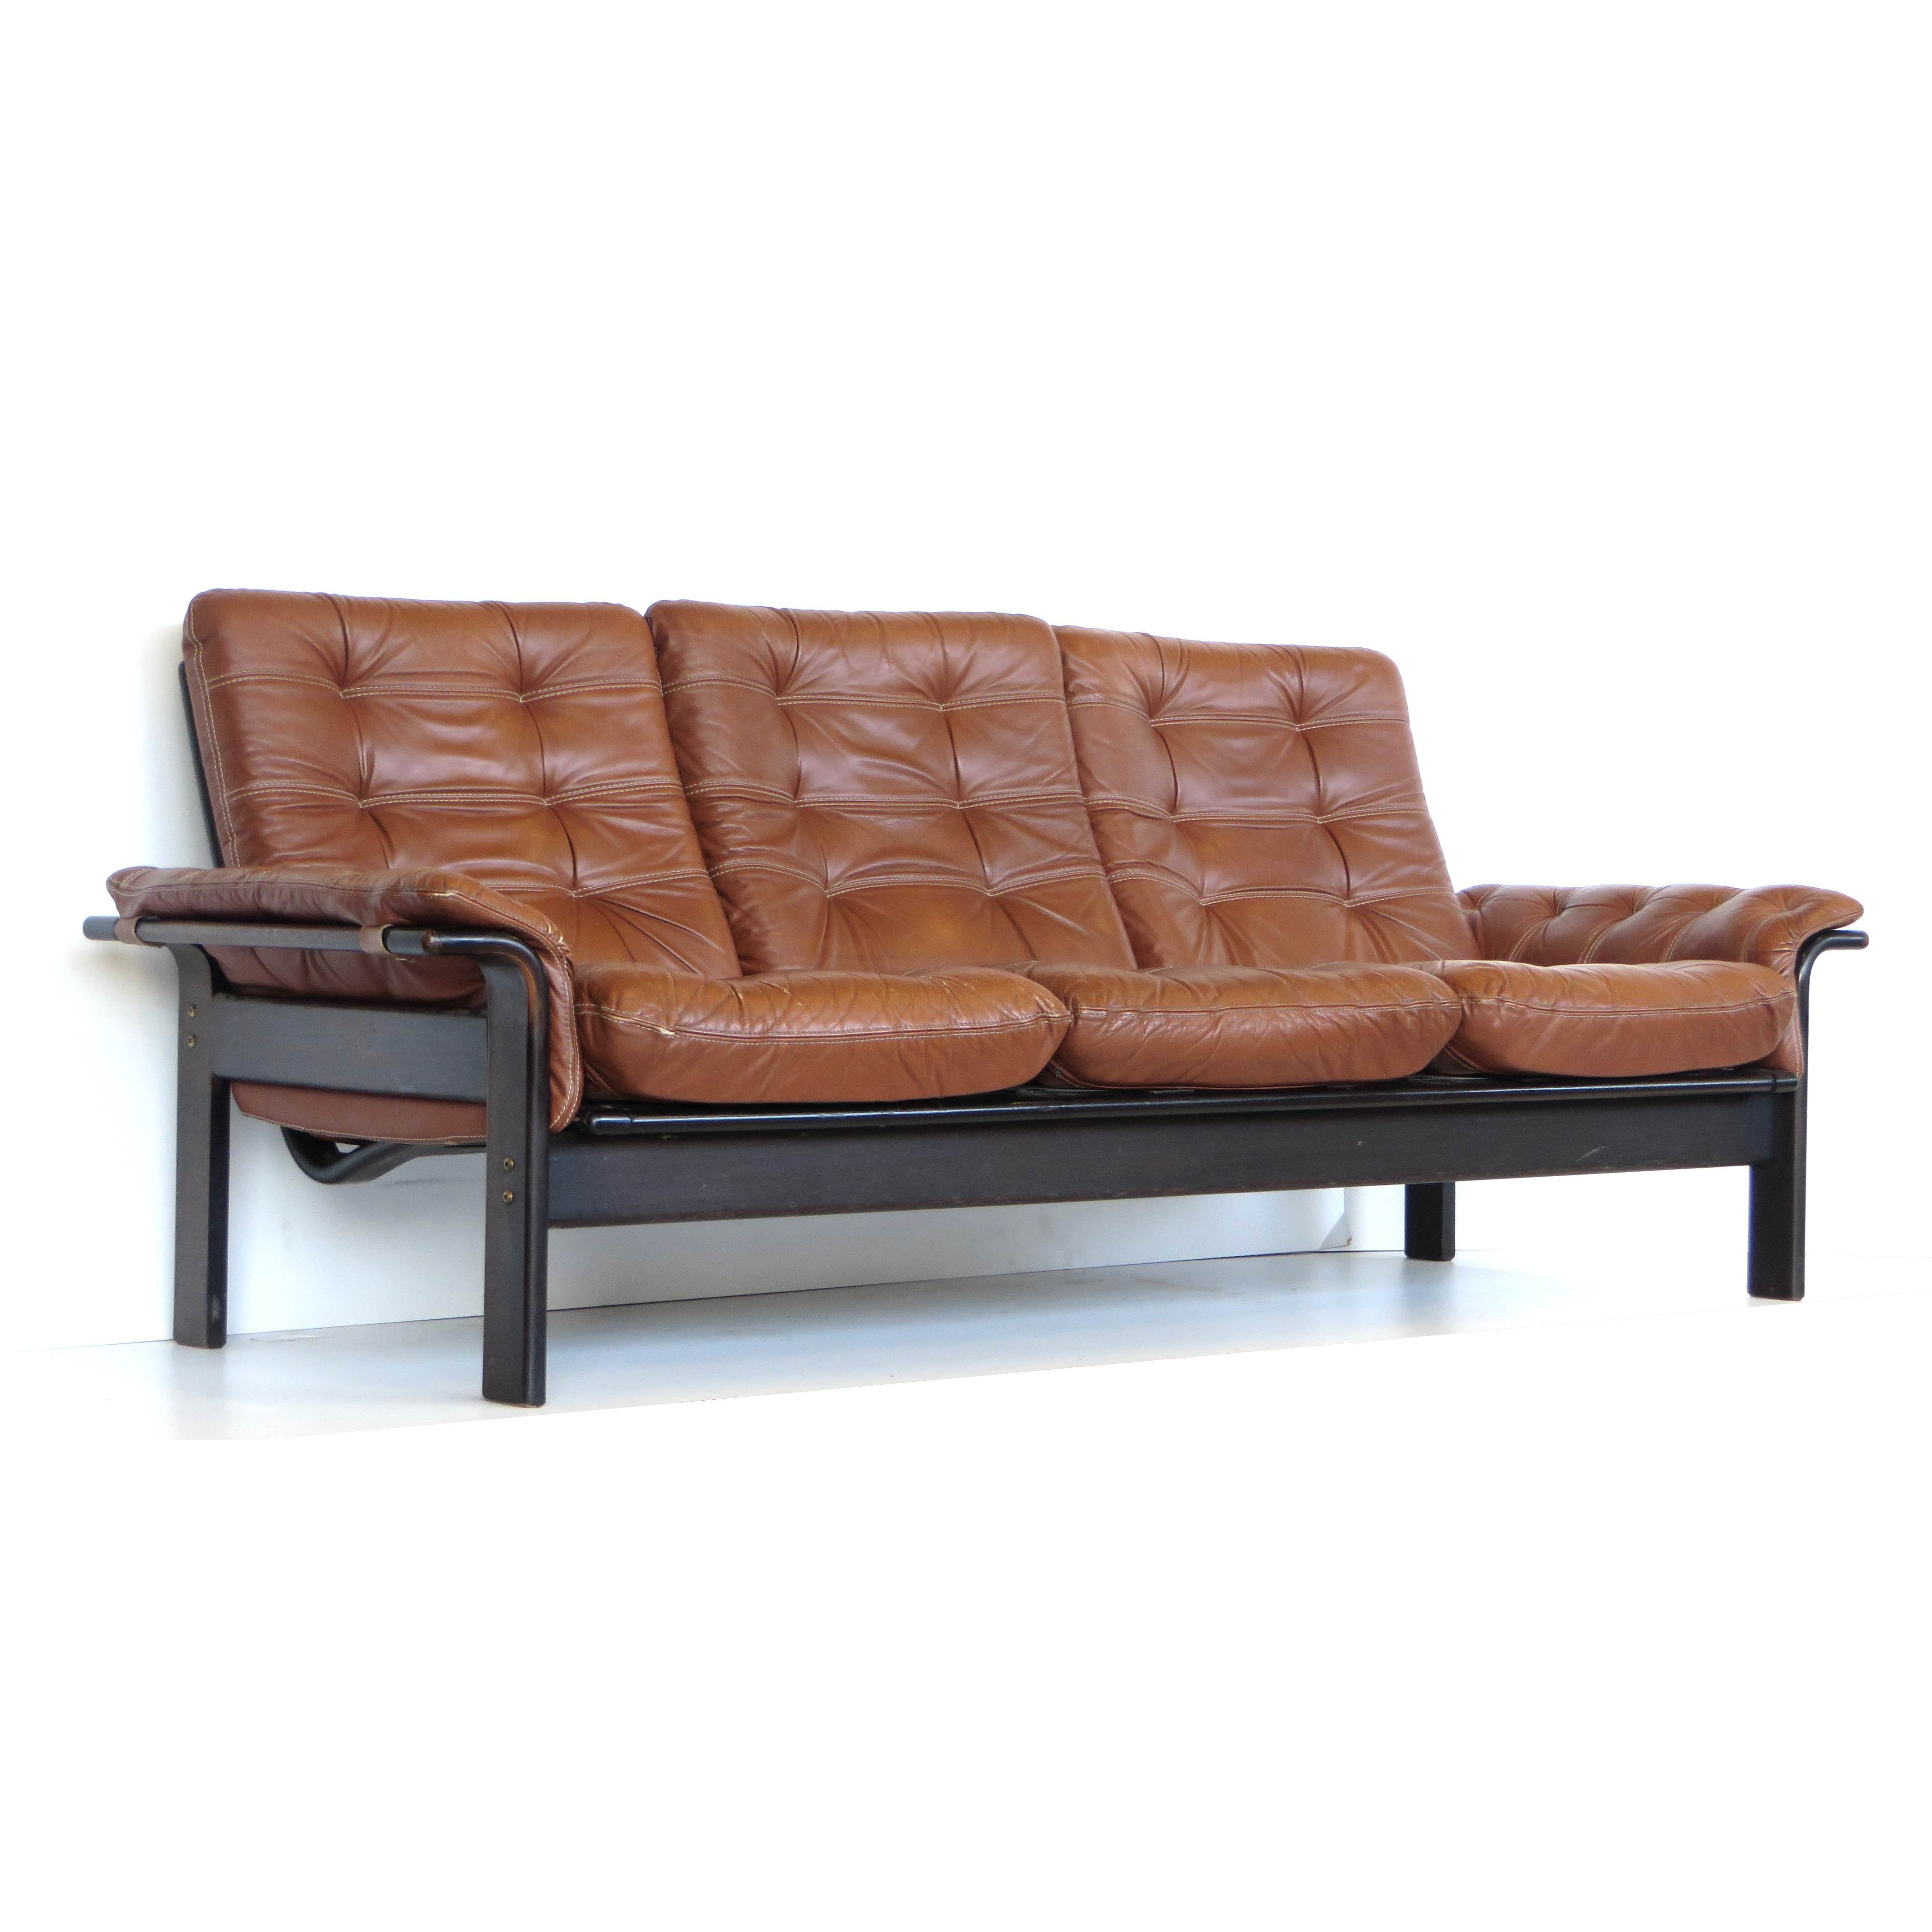 Vintage leather sofa by Coja